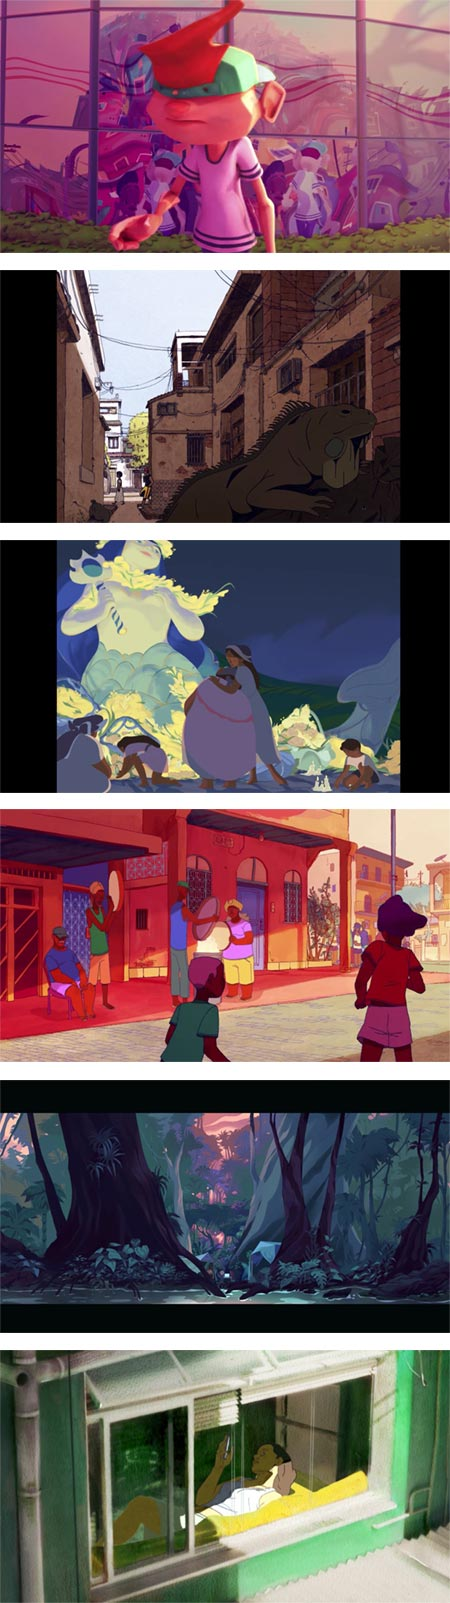 Gobelins students' animations for Annecy 2018